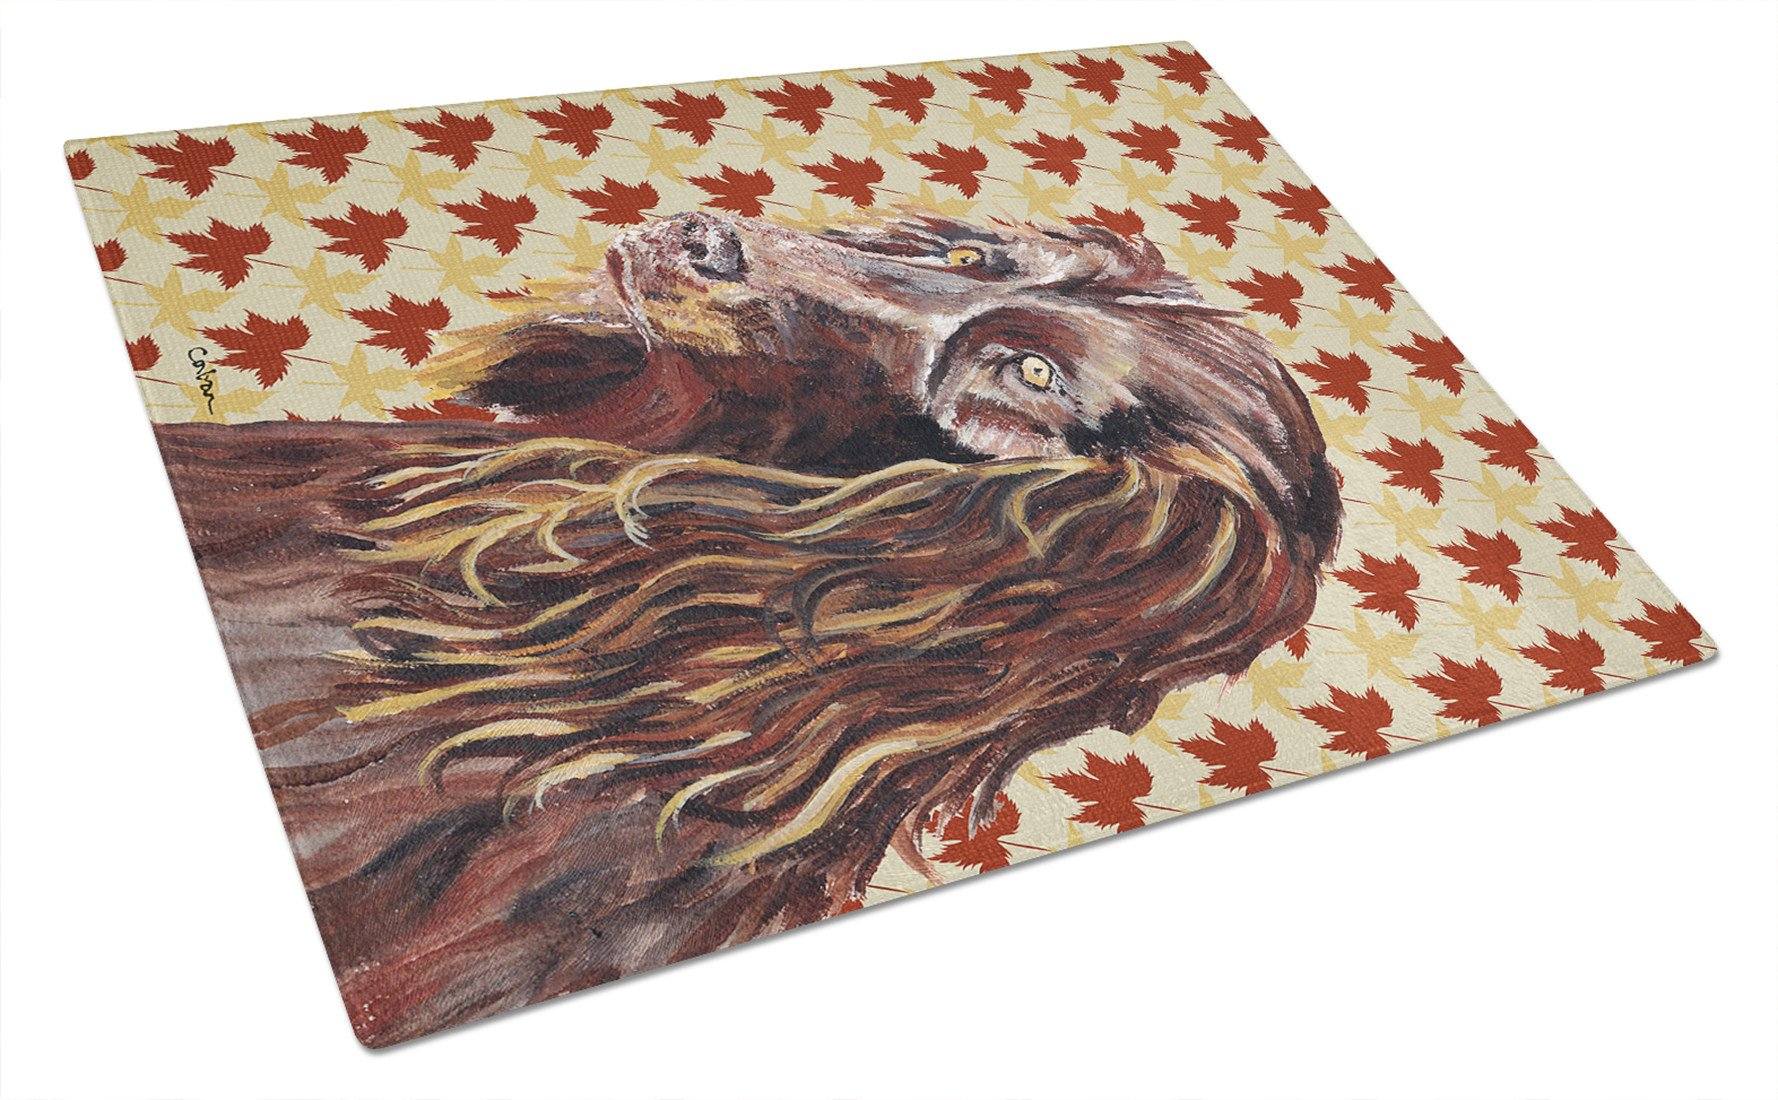 Boykin Spaniel Fall Leaves Glass Cutting Board Large by Caroline's Treasures